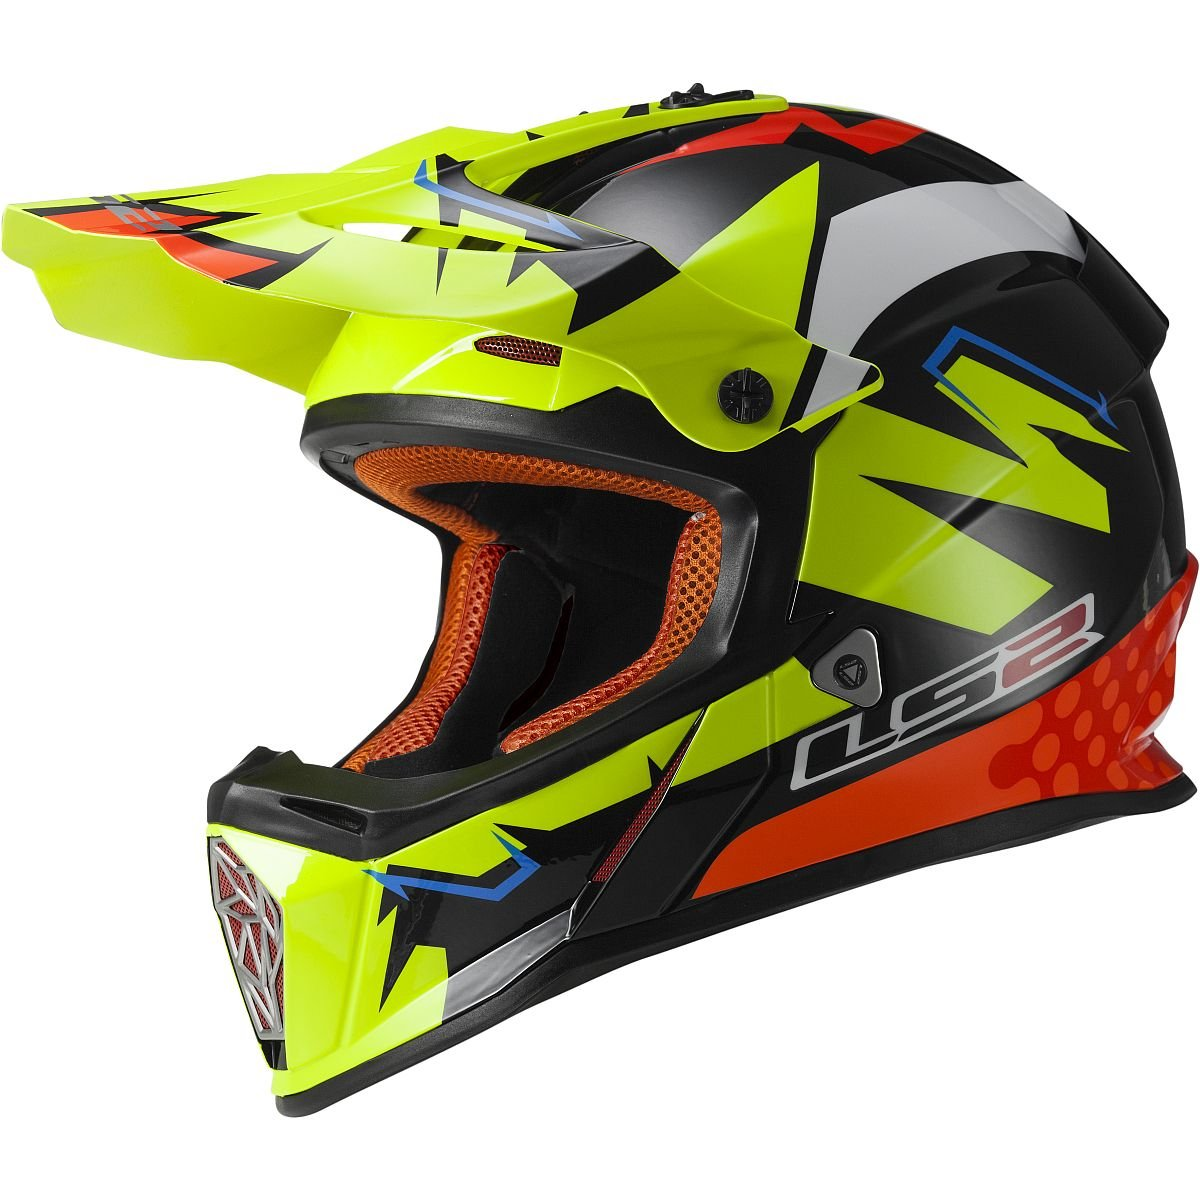 LS2 Helmets Fast Mini Explosive Youth Off-Road MX Motorcycle Helmet (Yellow, Large)